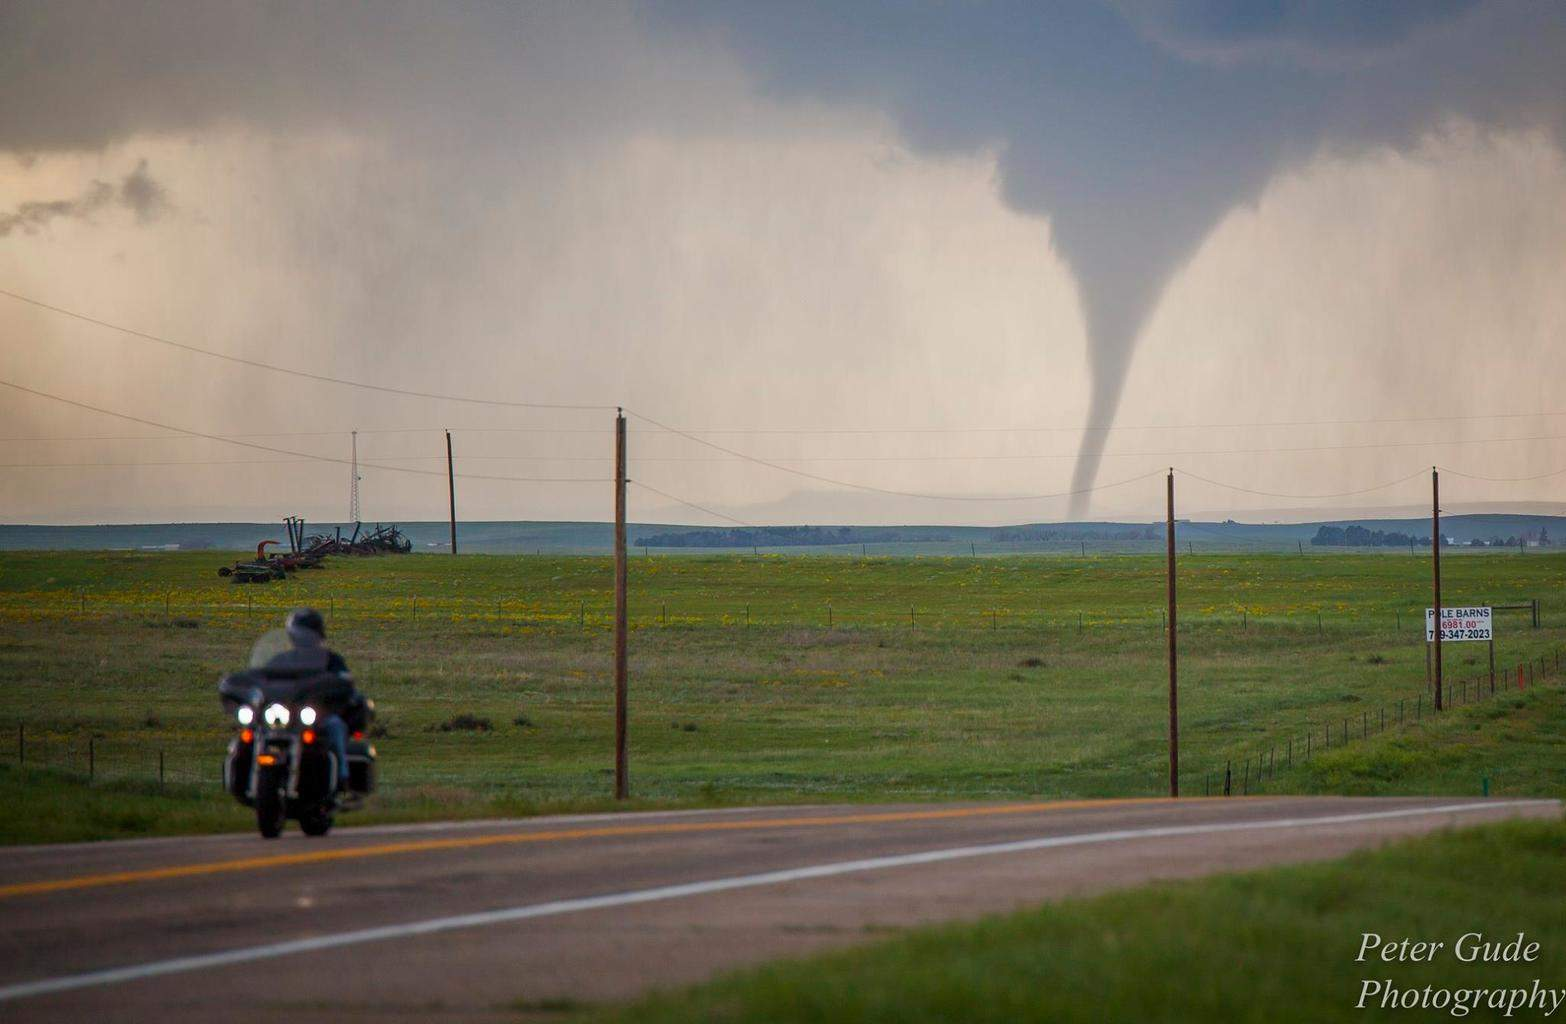 This was taken on US 24 in between Simla and Limon. I wonder if the biker checked his mirror to see this nice tornado, or he was wondering what everybody was looking at, or just heading for a stop in Limon...